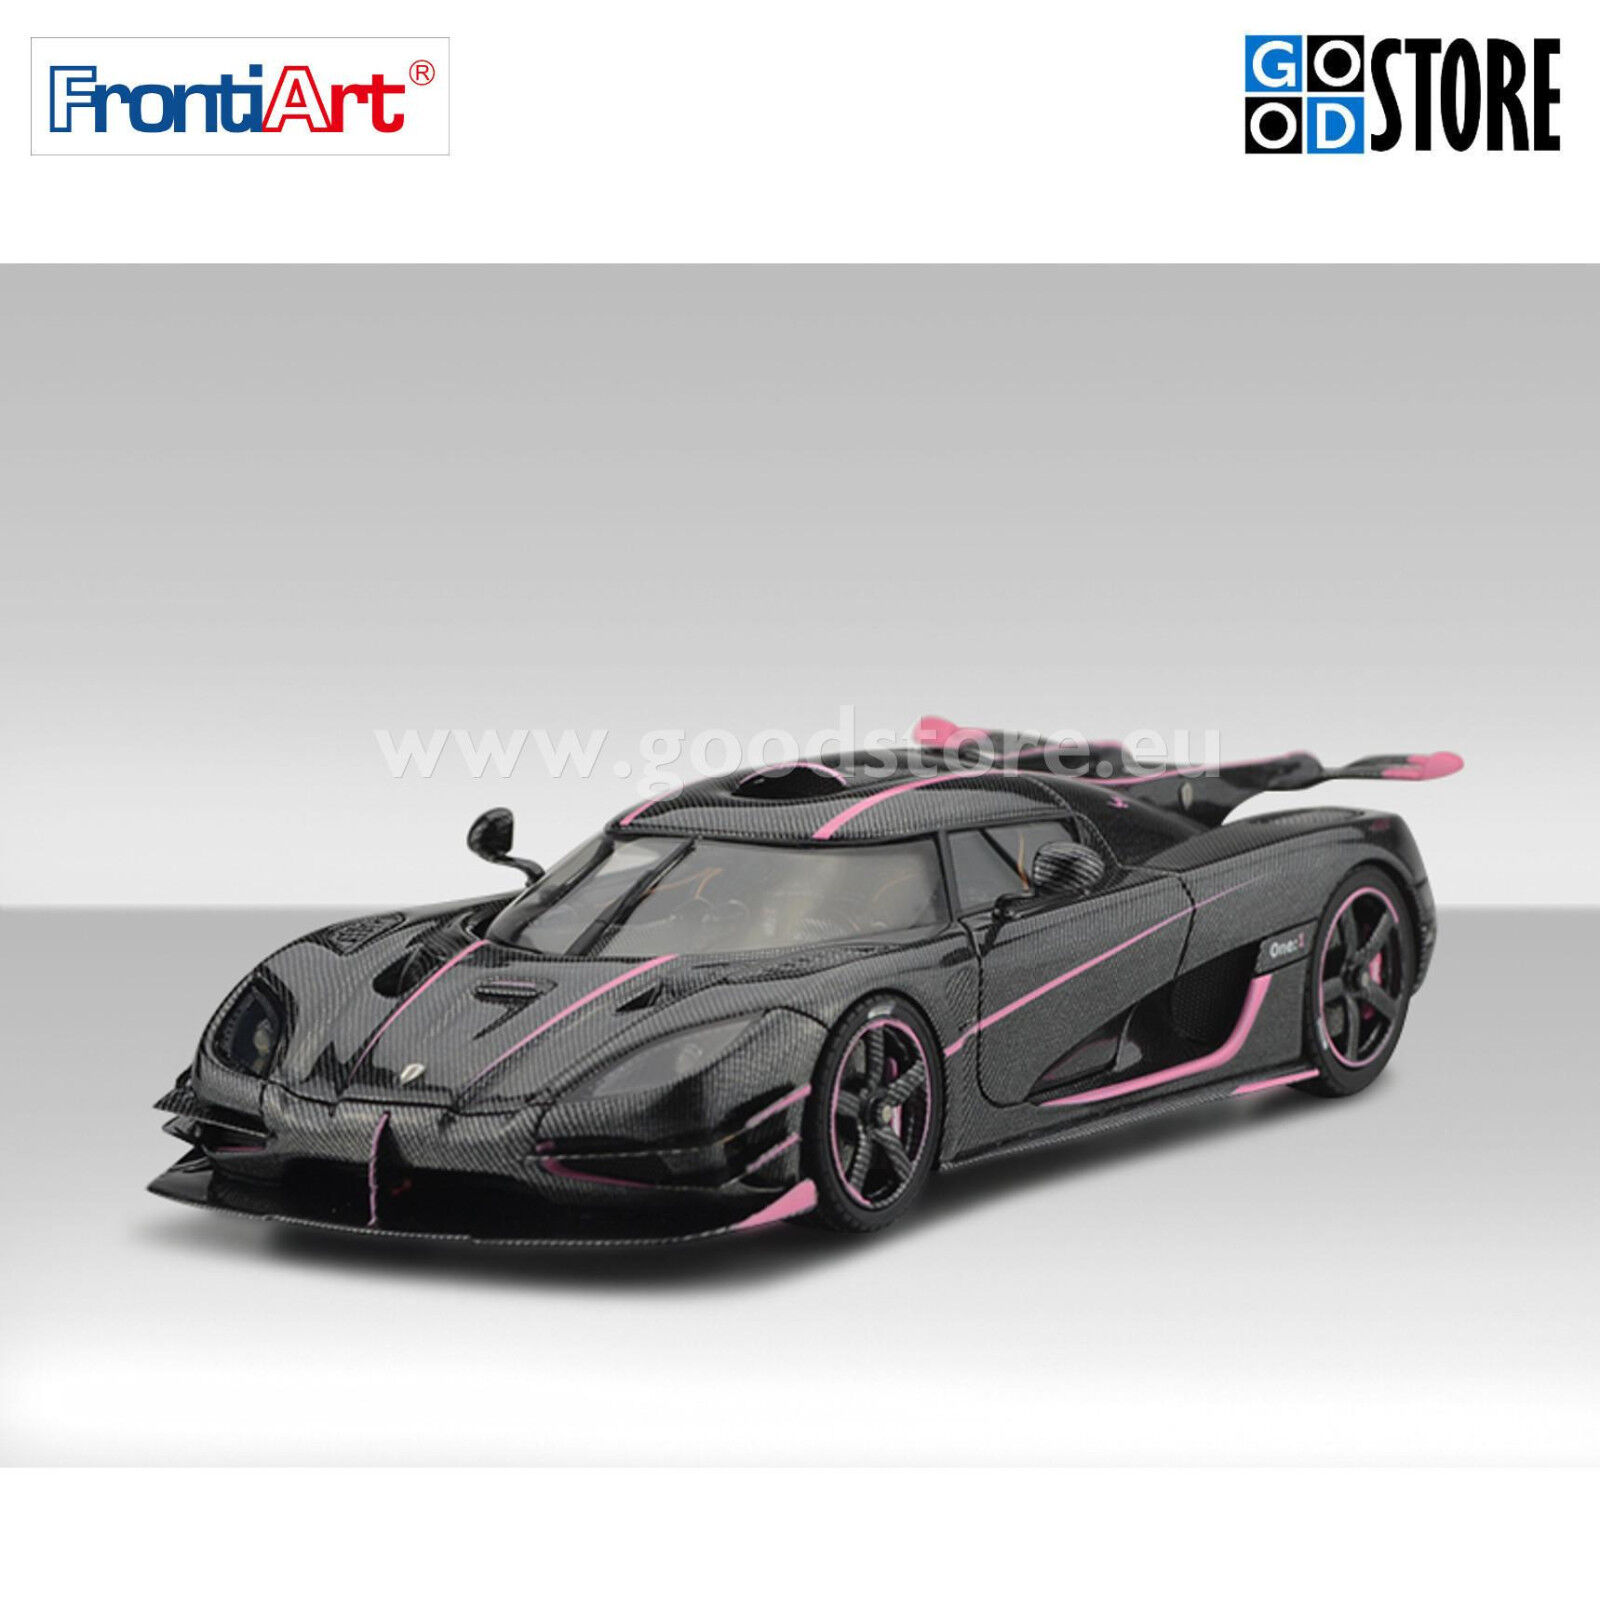 Koenigsegg One 1 Voiture Modèle Comme neuf IN BOX frontiart F038-55 1 43 DE COLLECTION Limited Edt.